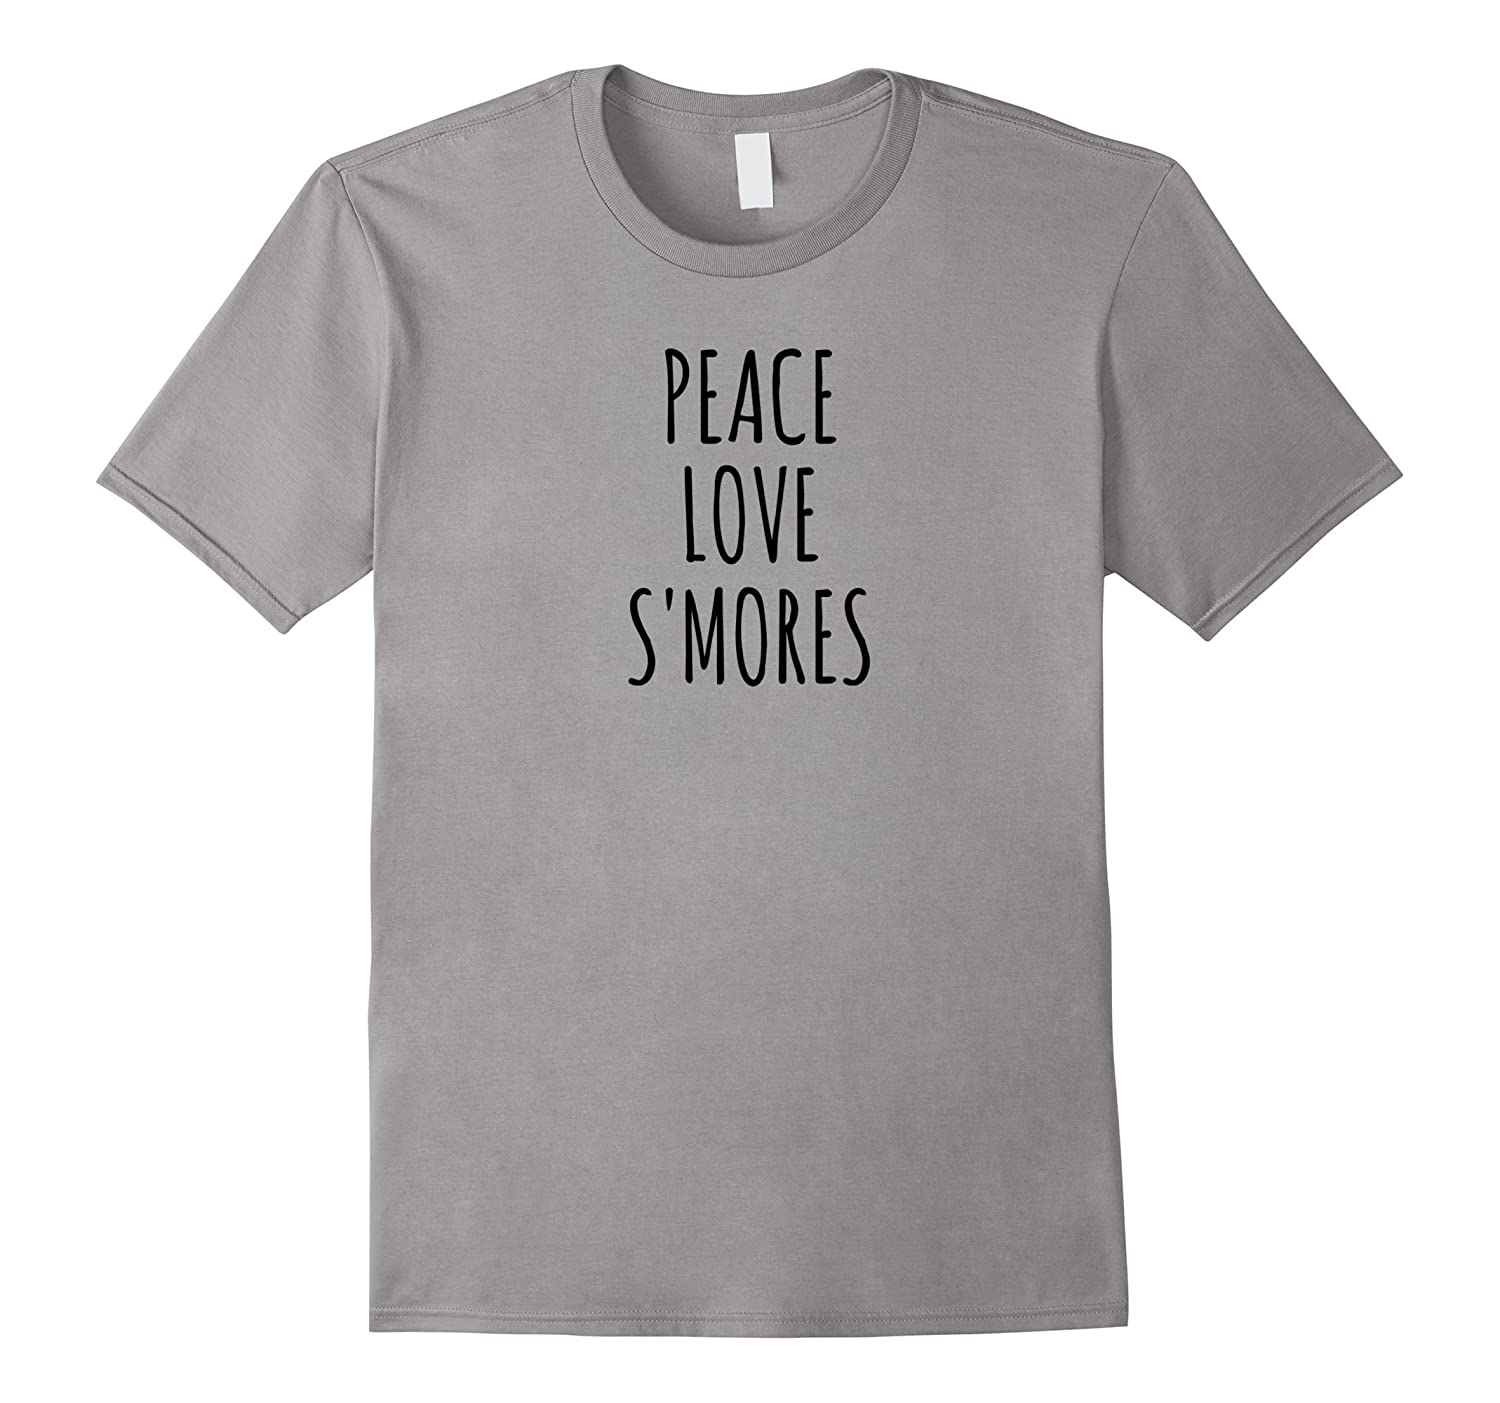 Womens Girls Camping T Shirt Peace Love SMores-CD